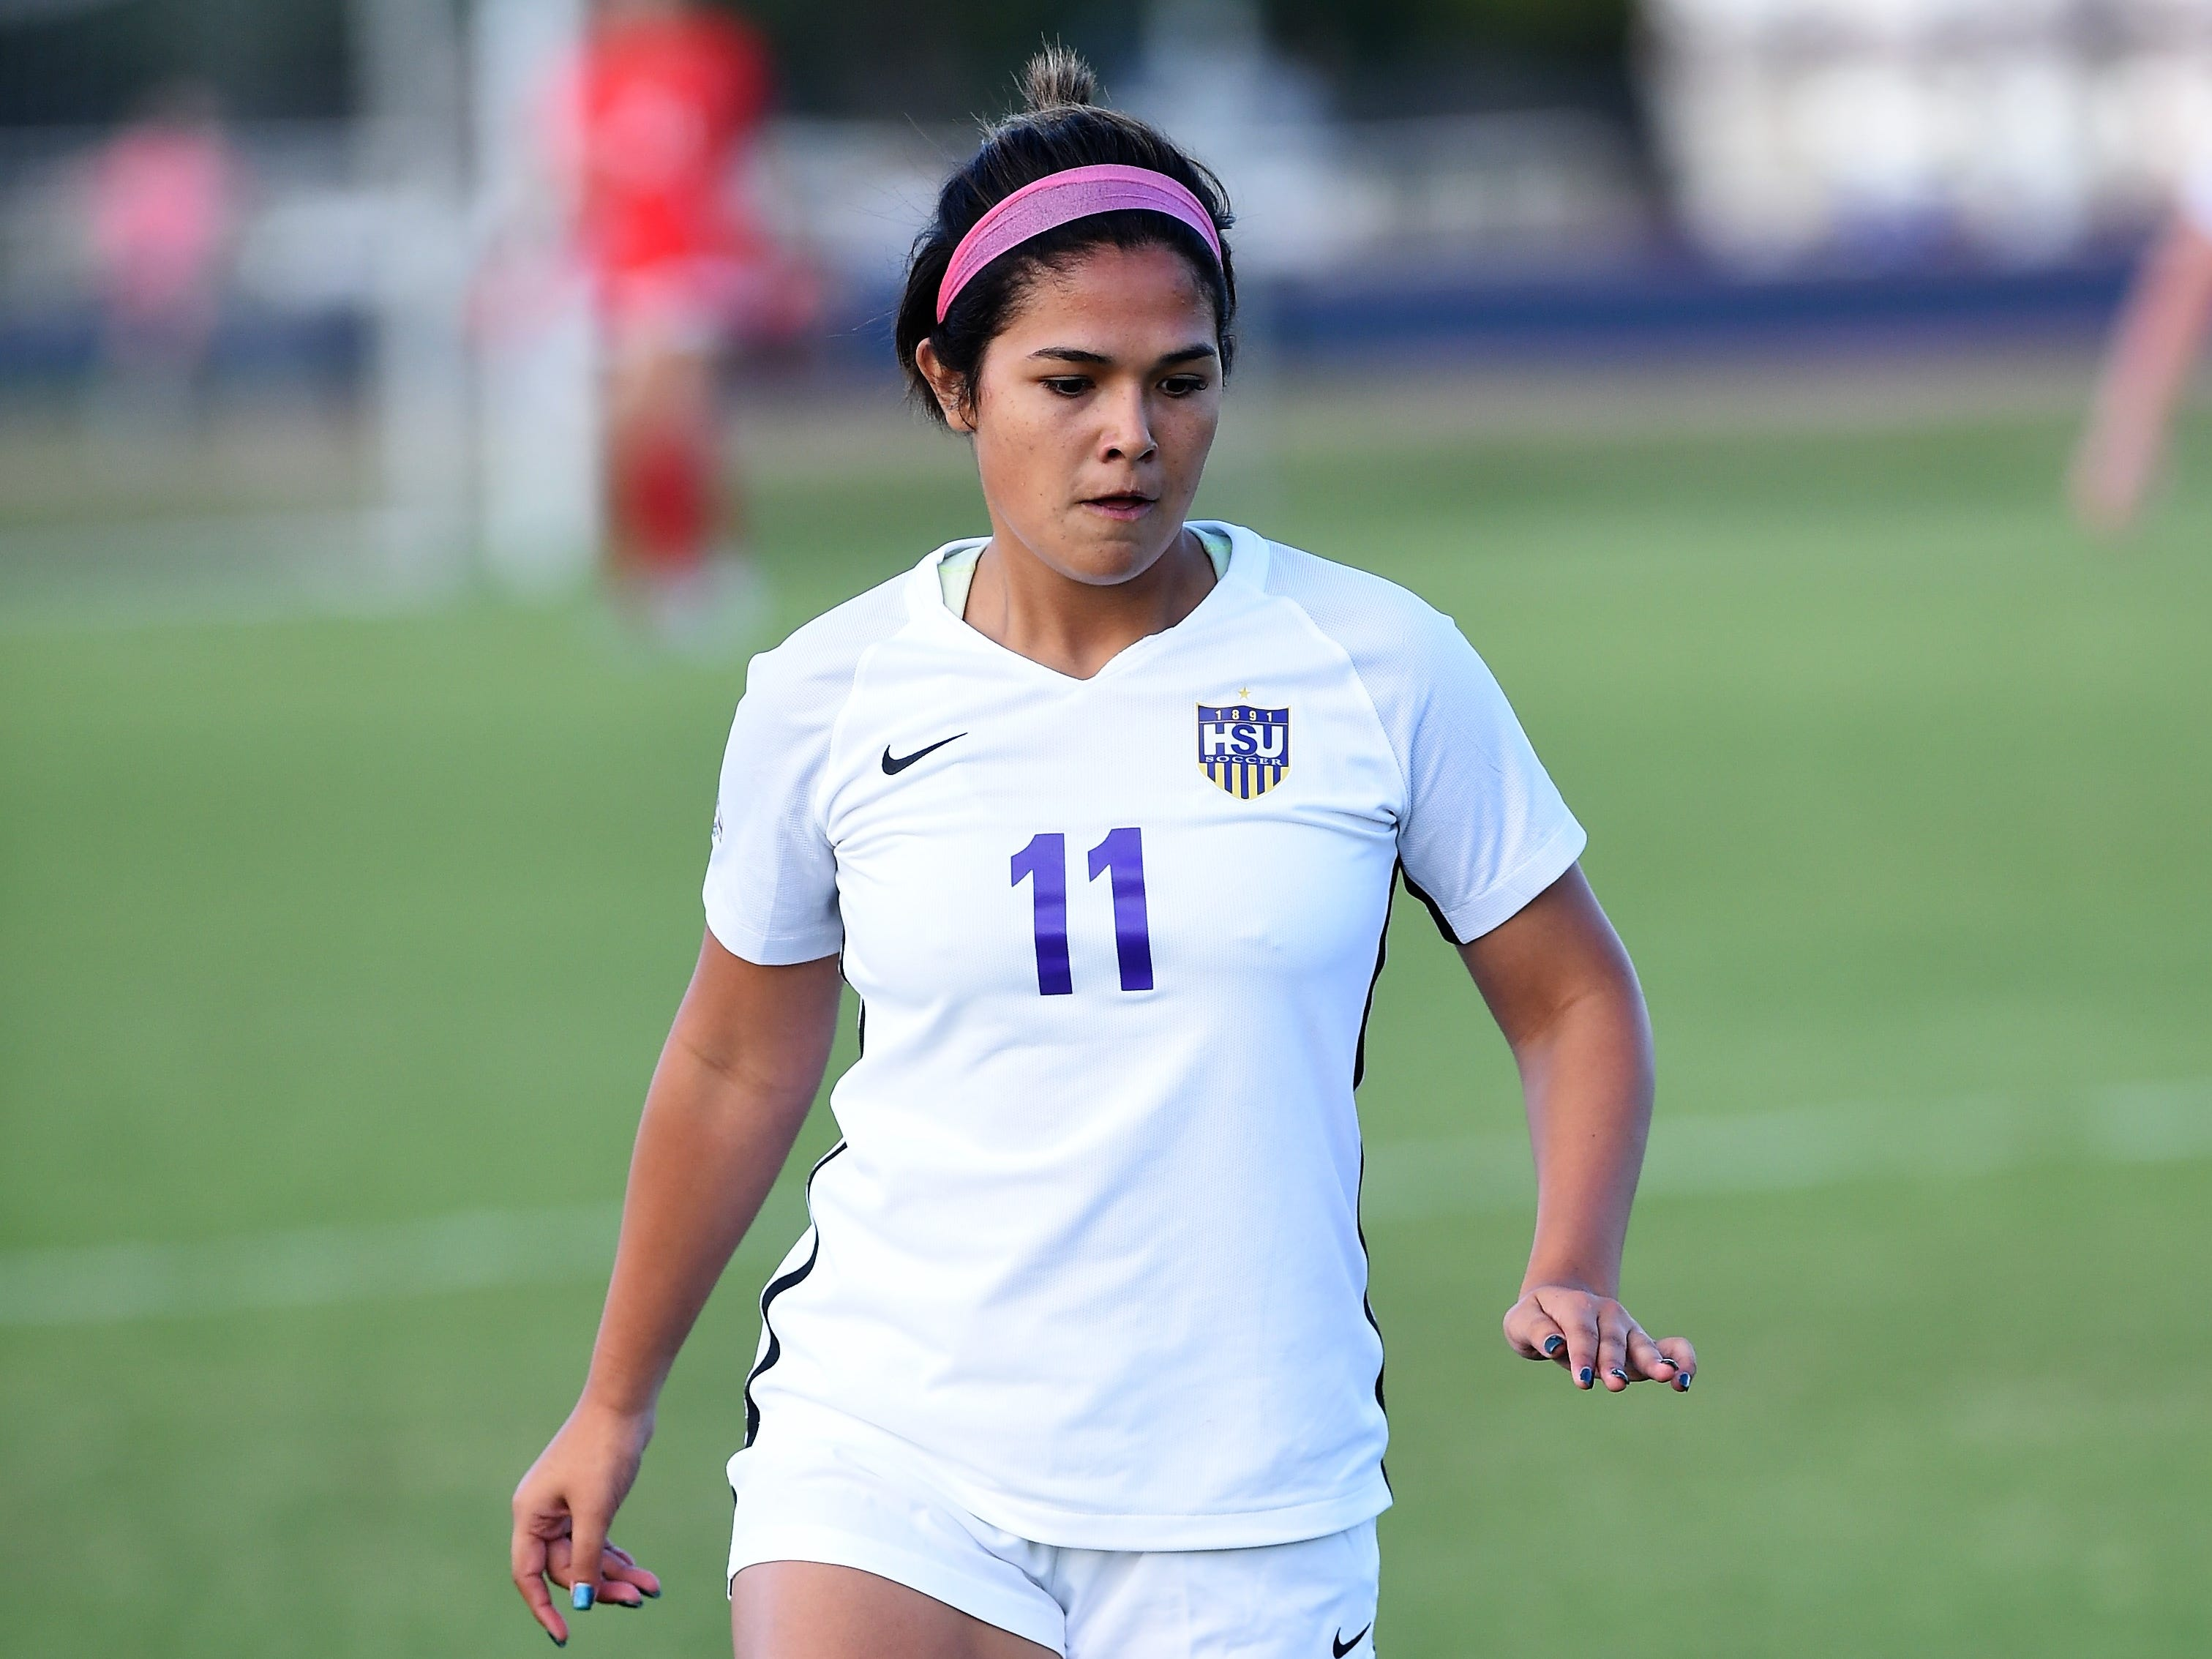 Hardin-Simmons' Avery Lara (11) carries the ball against Howard Payne at the HSU Soccer Complex on Thursday, Oct. 11, 2018. The Cowgirls won 4-1.